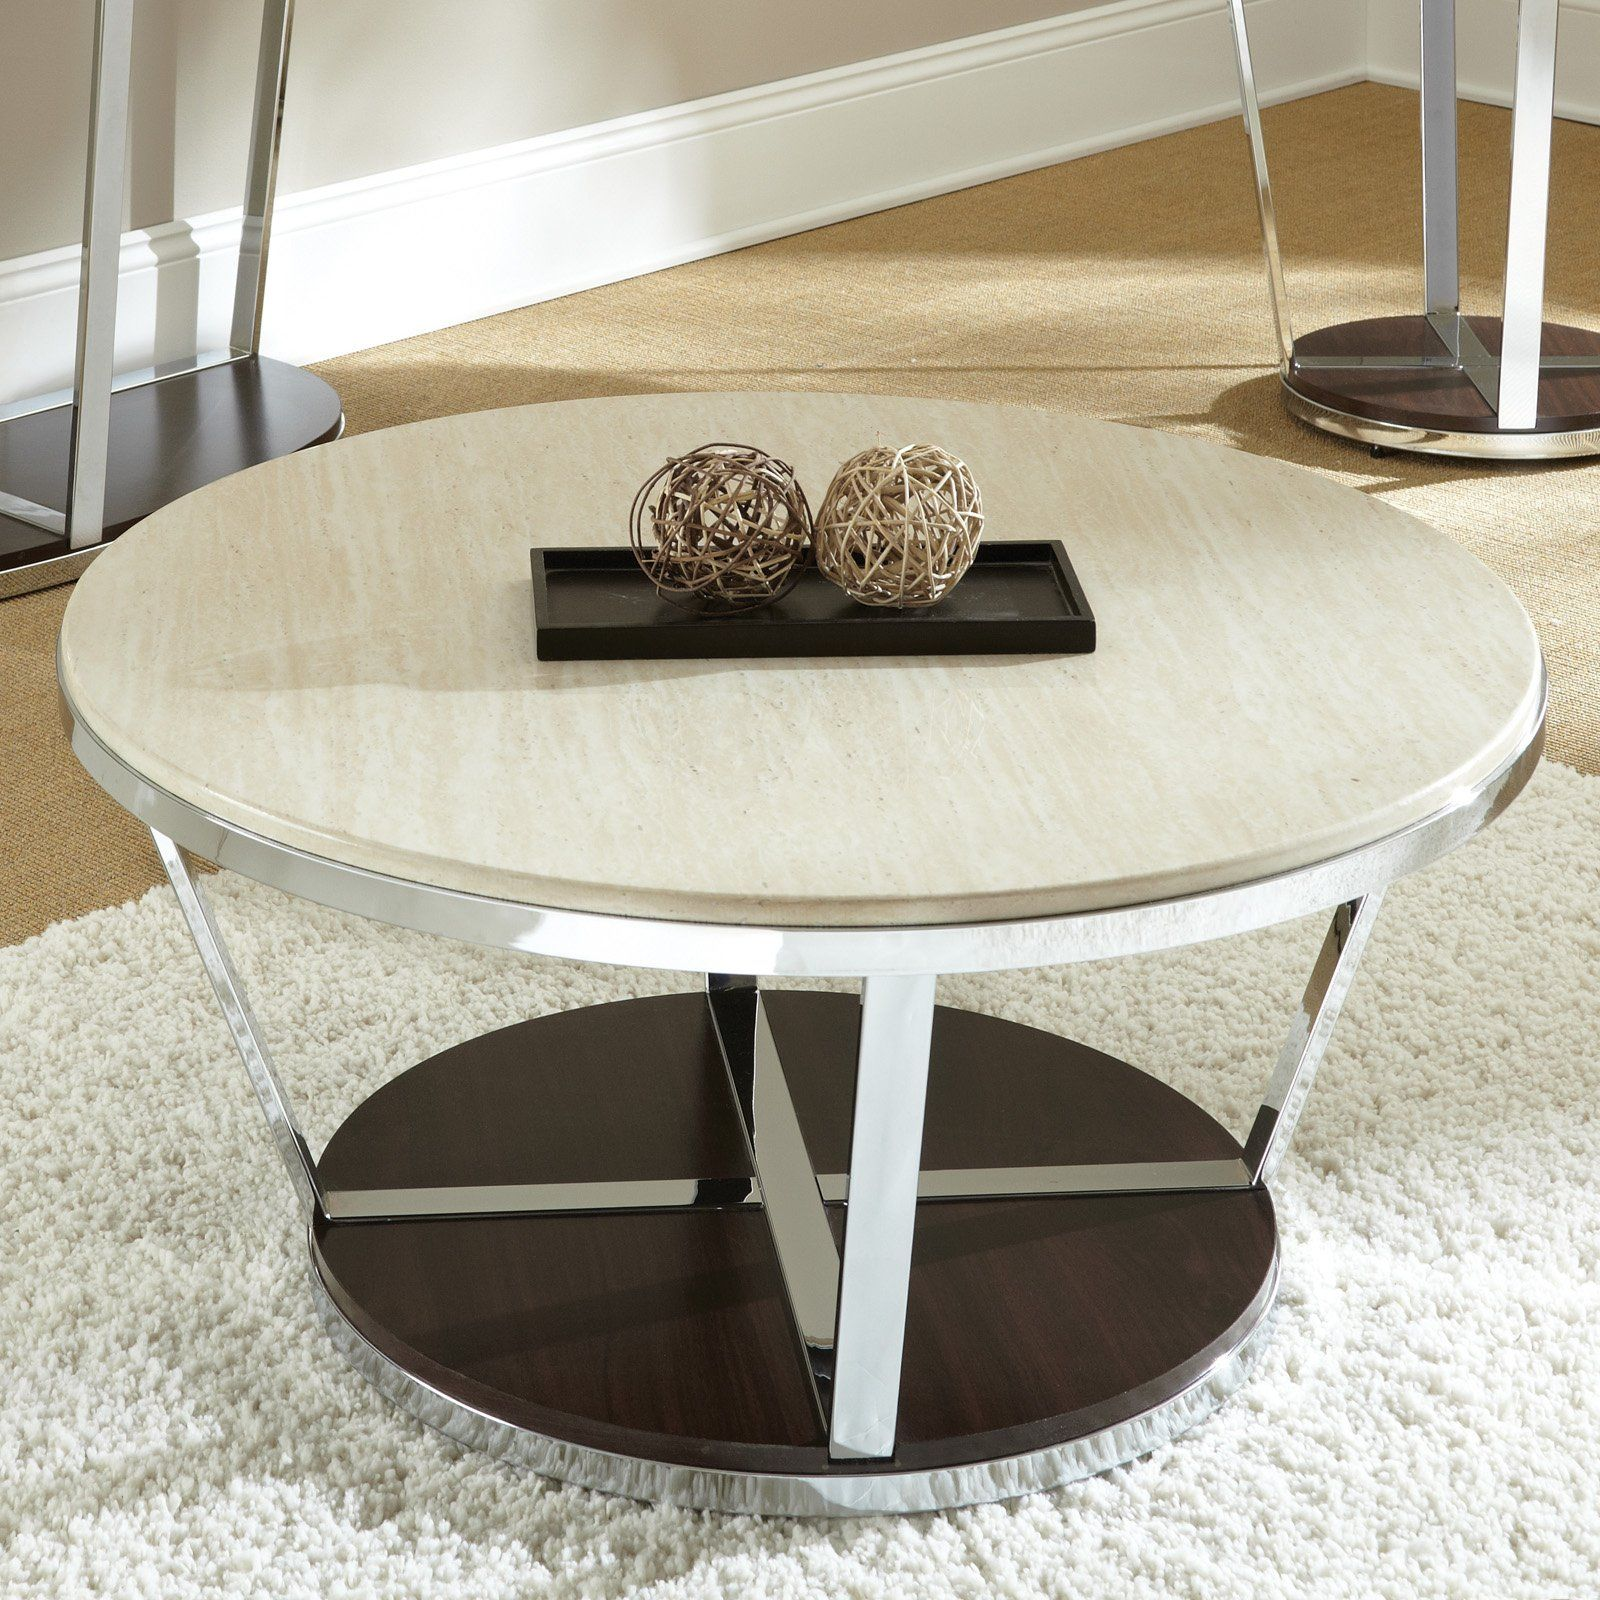 Have To Have It Steve Silver Bosco Round Faux Marble Coffee Table With Casters 314 Marble Coffee Table Set Faux Marble Coffee Table Coffee Table With Casters [ 1600 x 1600 Pixel ]